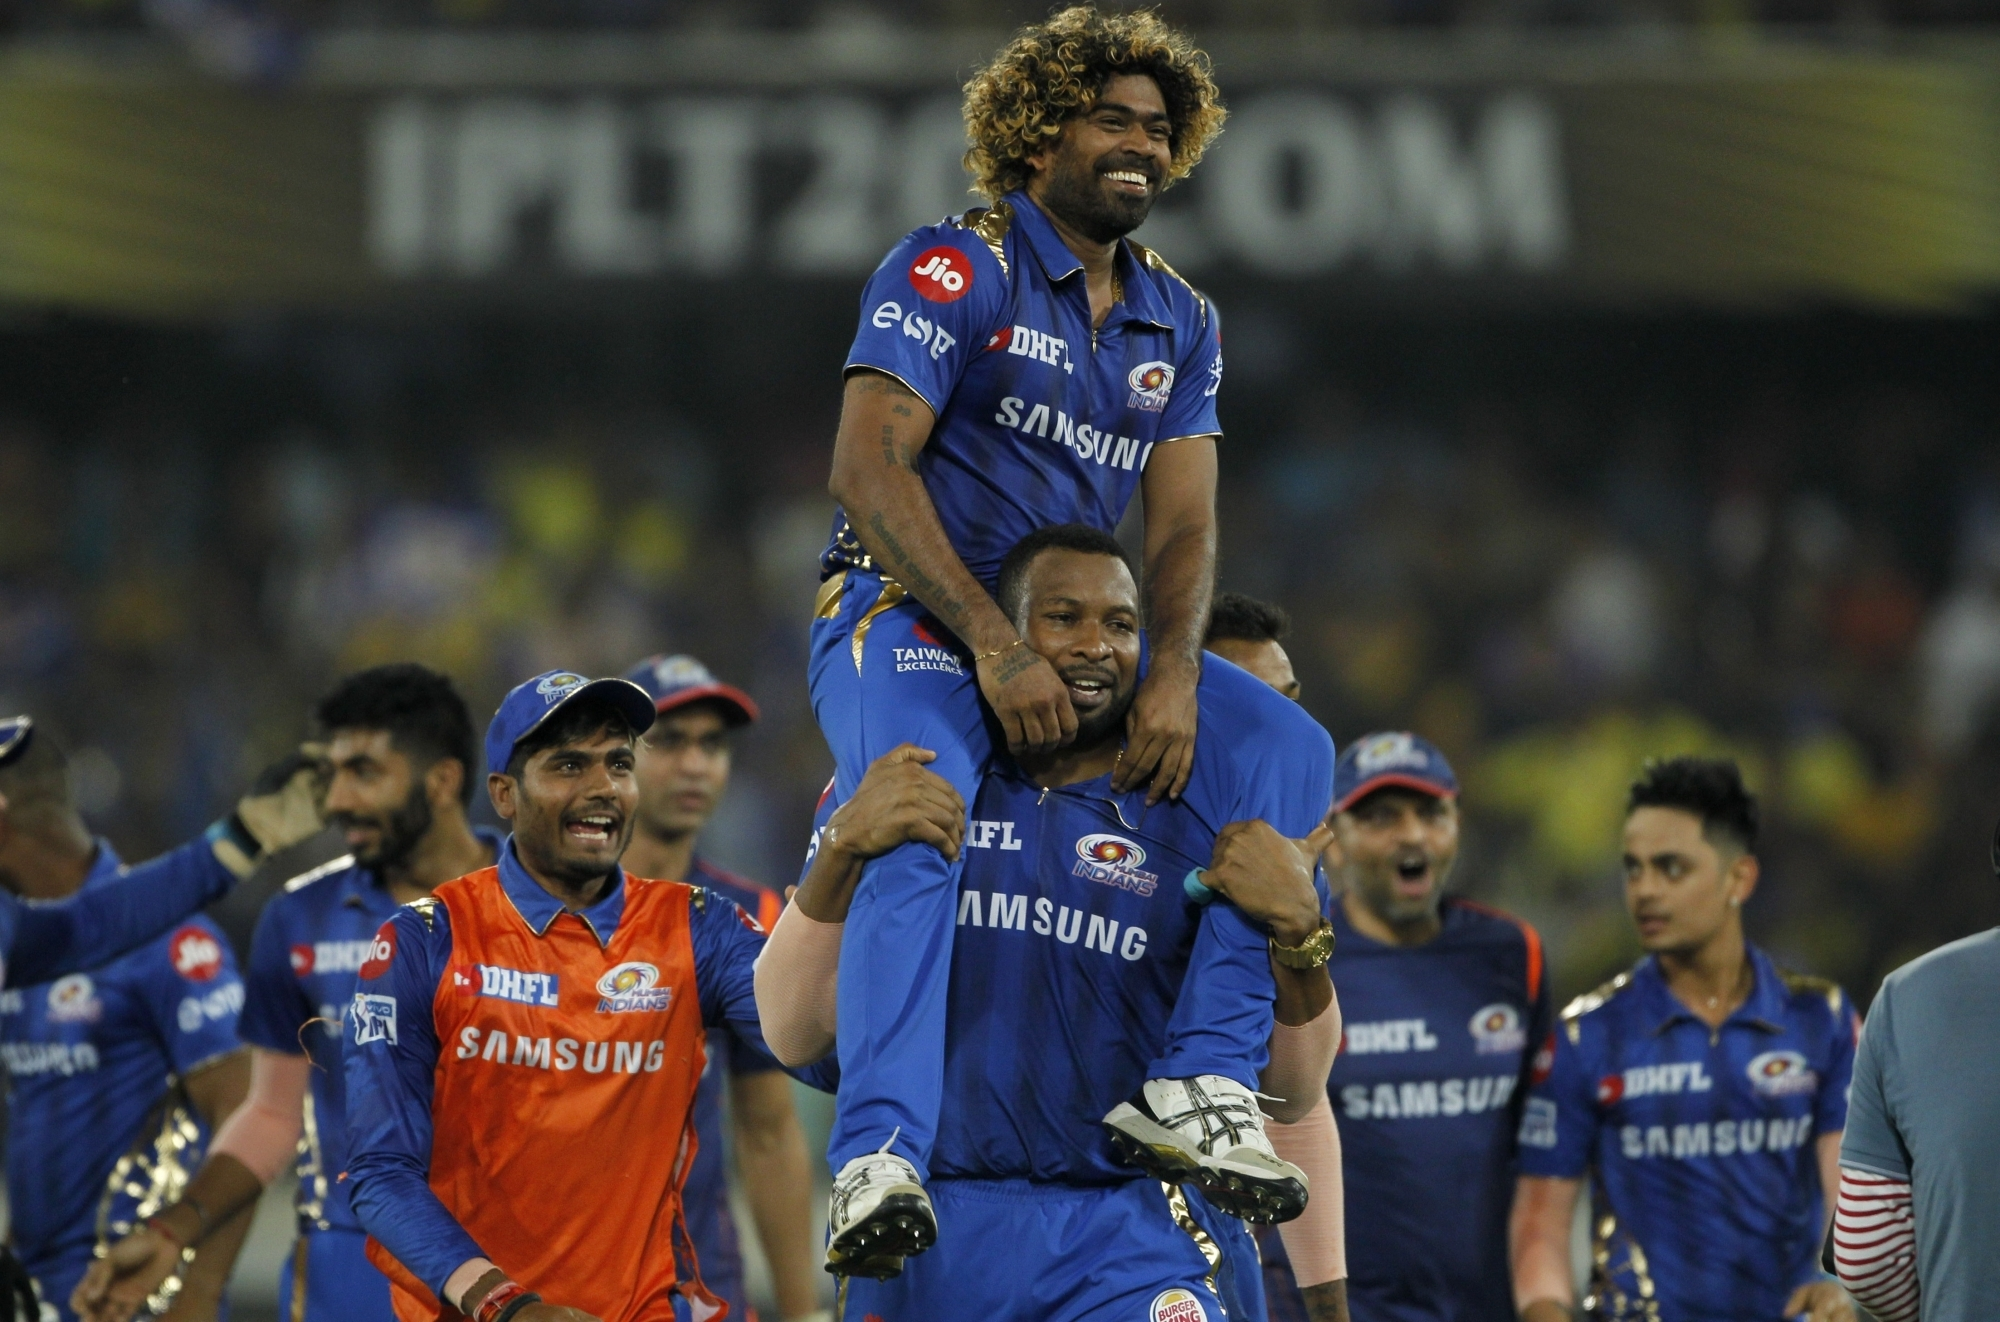 MI players lifted Malinga on the shoulder after he bowled an outstanding last over | IANS